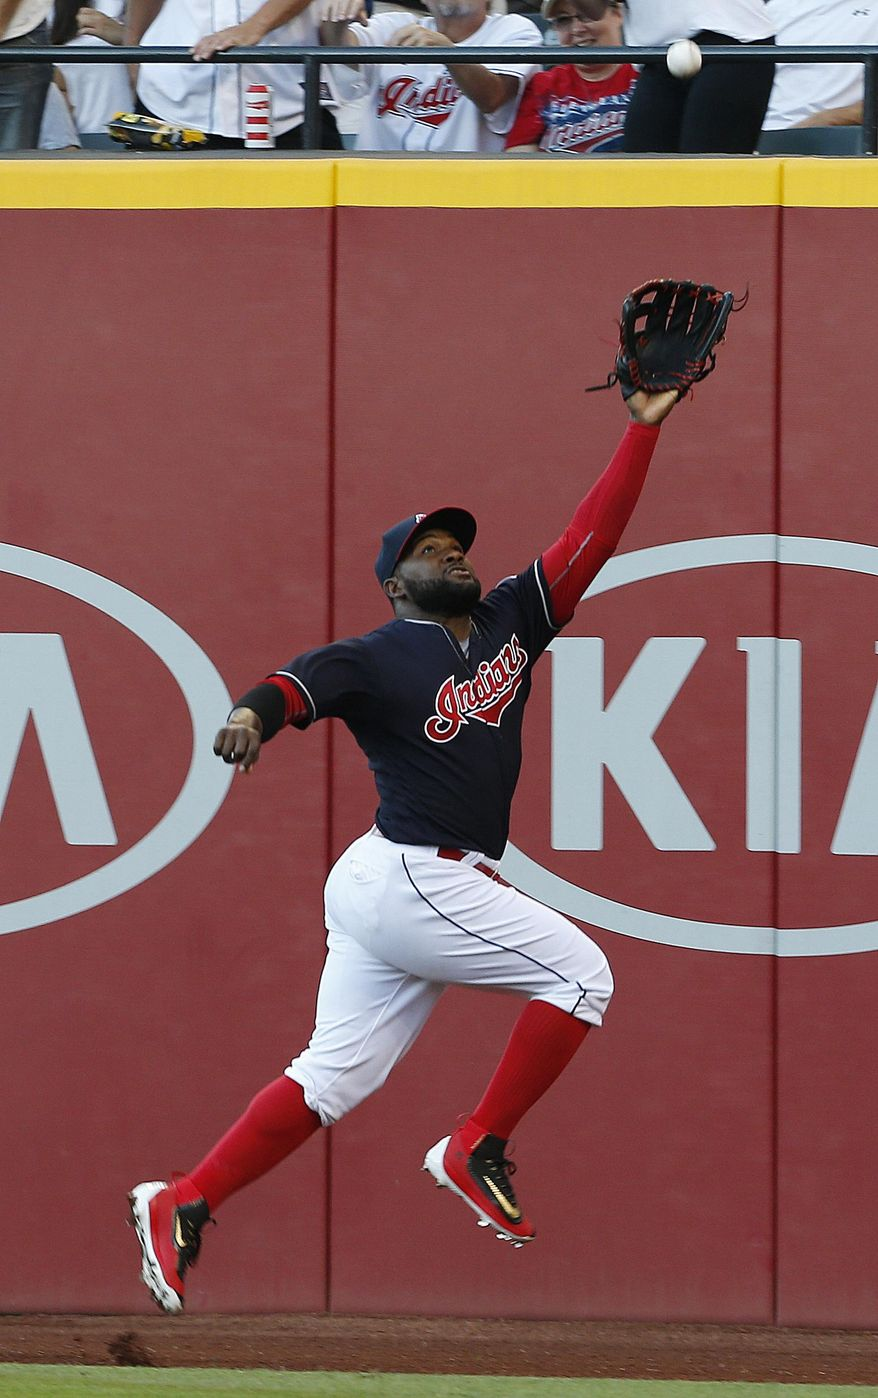 Cleveland Indians' Abraham Almonte makes a leaping catch for the out on Washington Nationals' Bryce Harper during the third inning of a baseball game Tuesday, July 26, 2016, in Cleveland. (AP Photo/Ron Schwane)